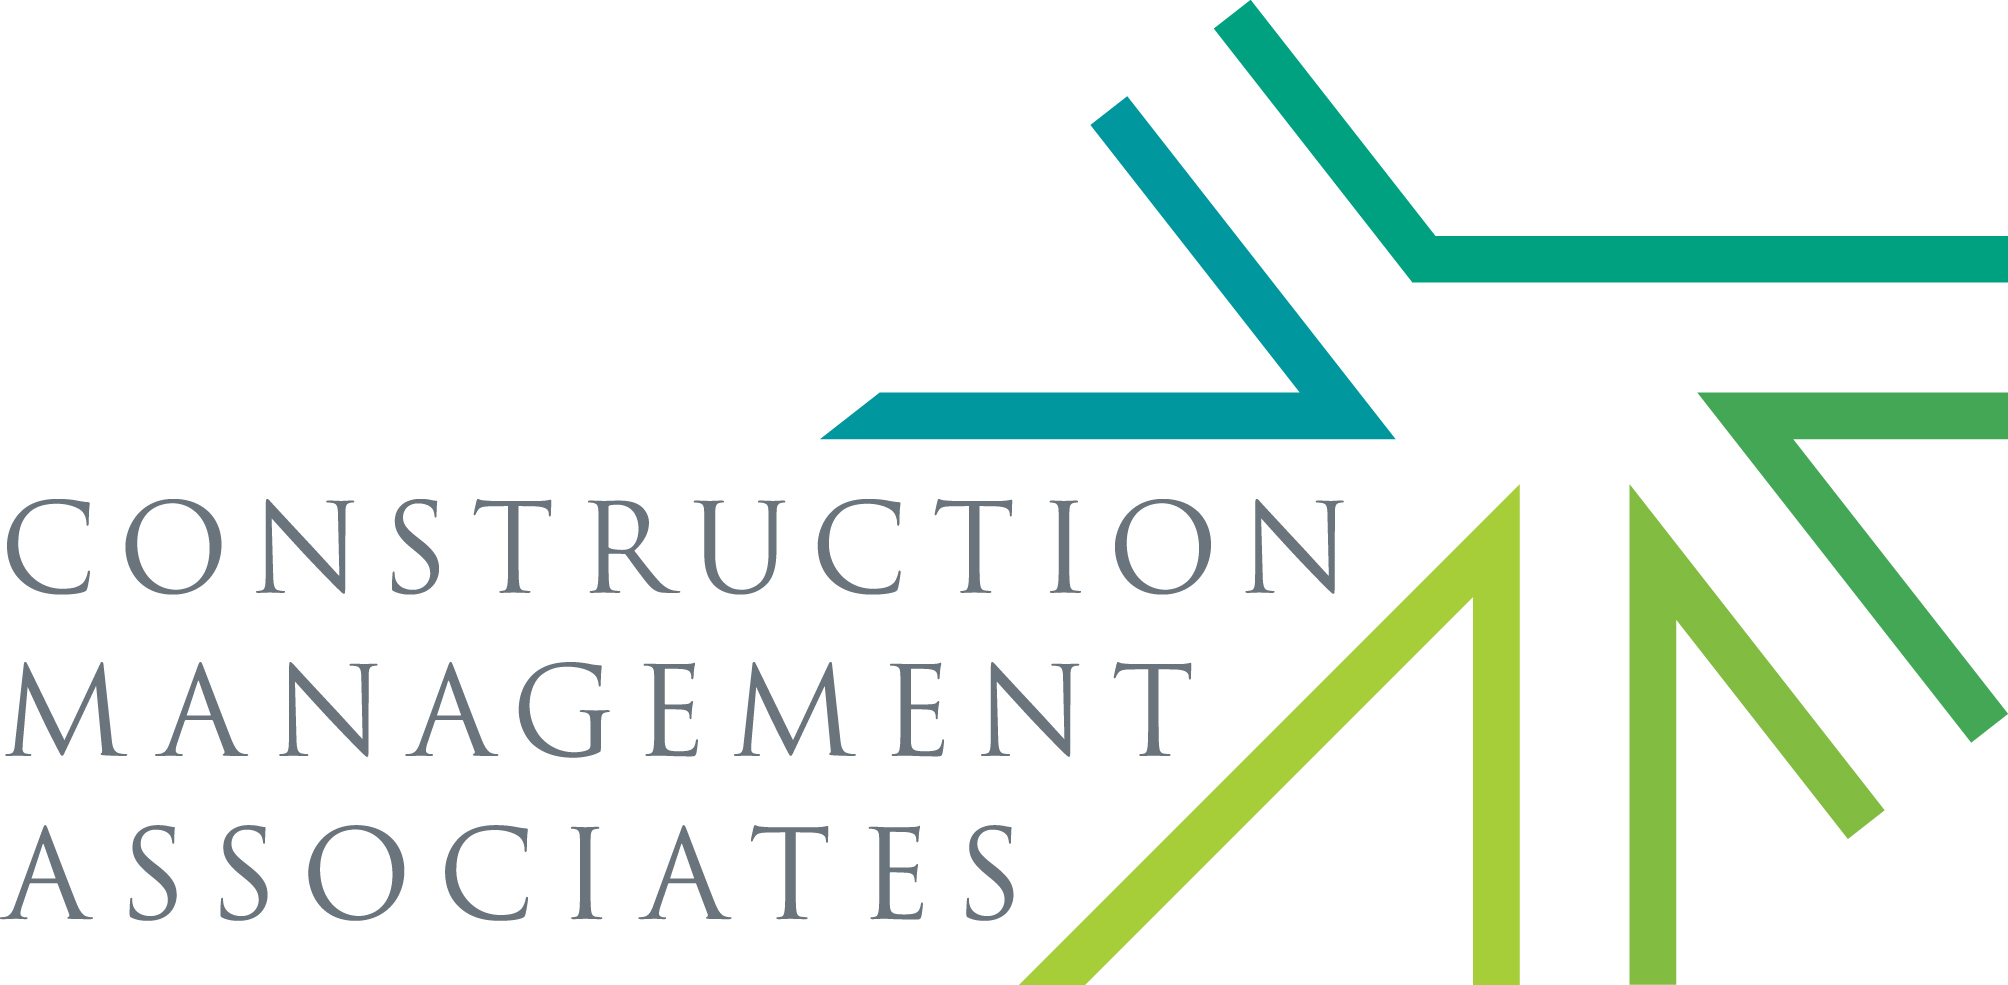 Construction Management Associates Sal, CMA